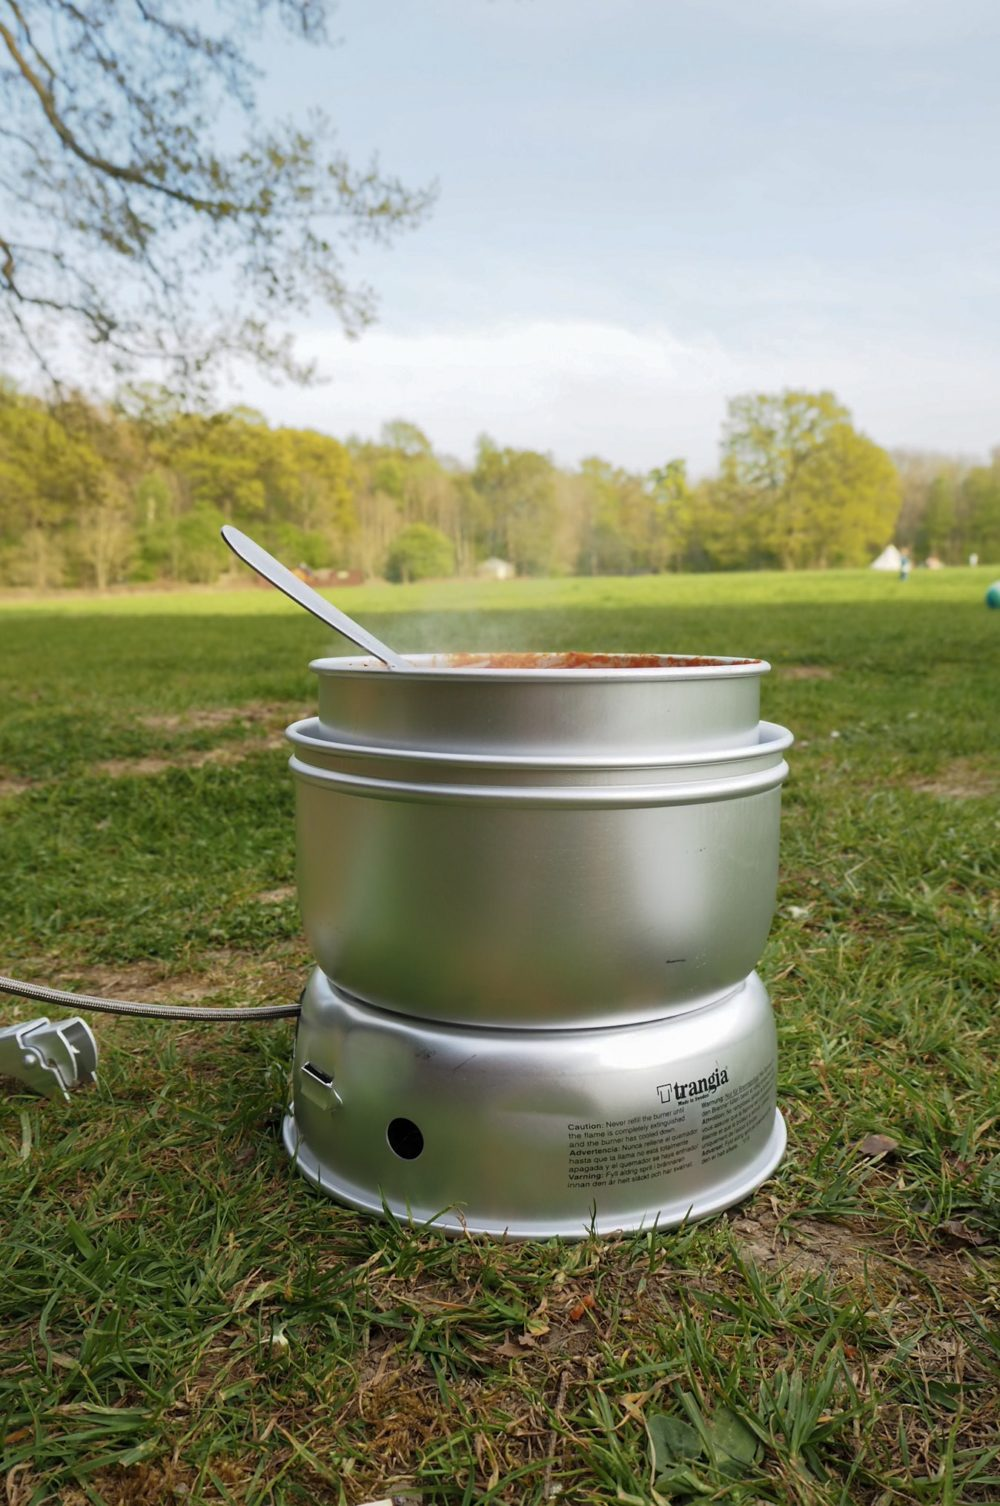 Vango Trangia stove is a van life essential for camper van life